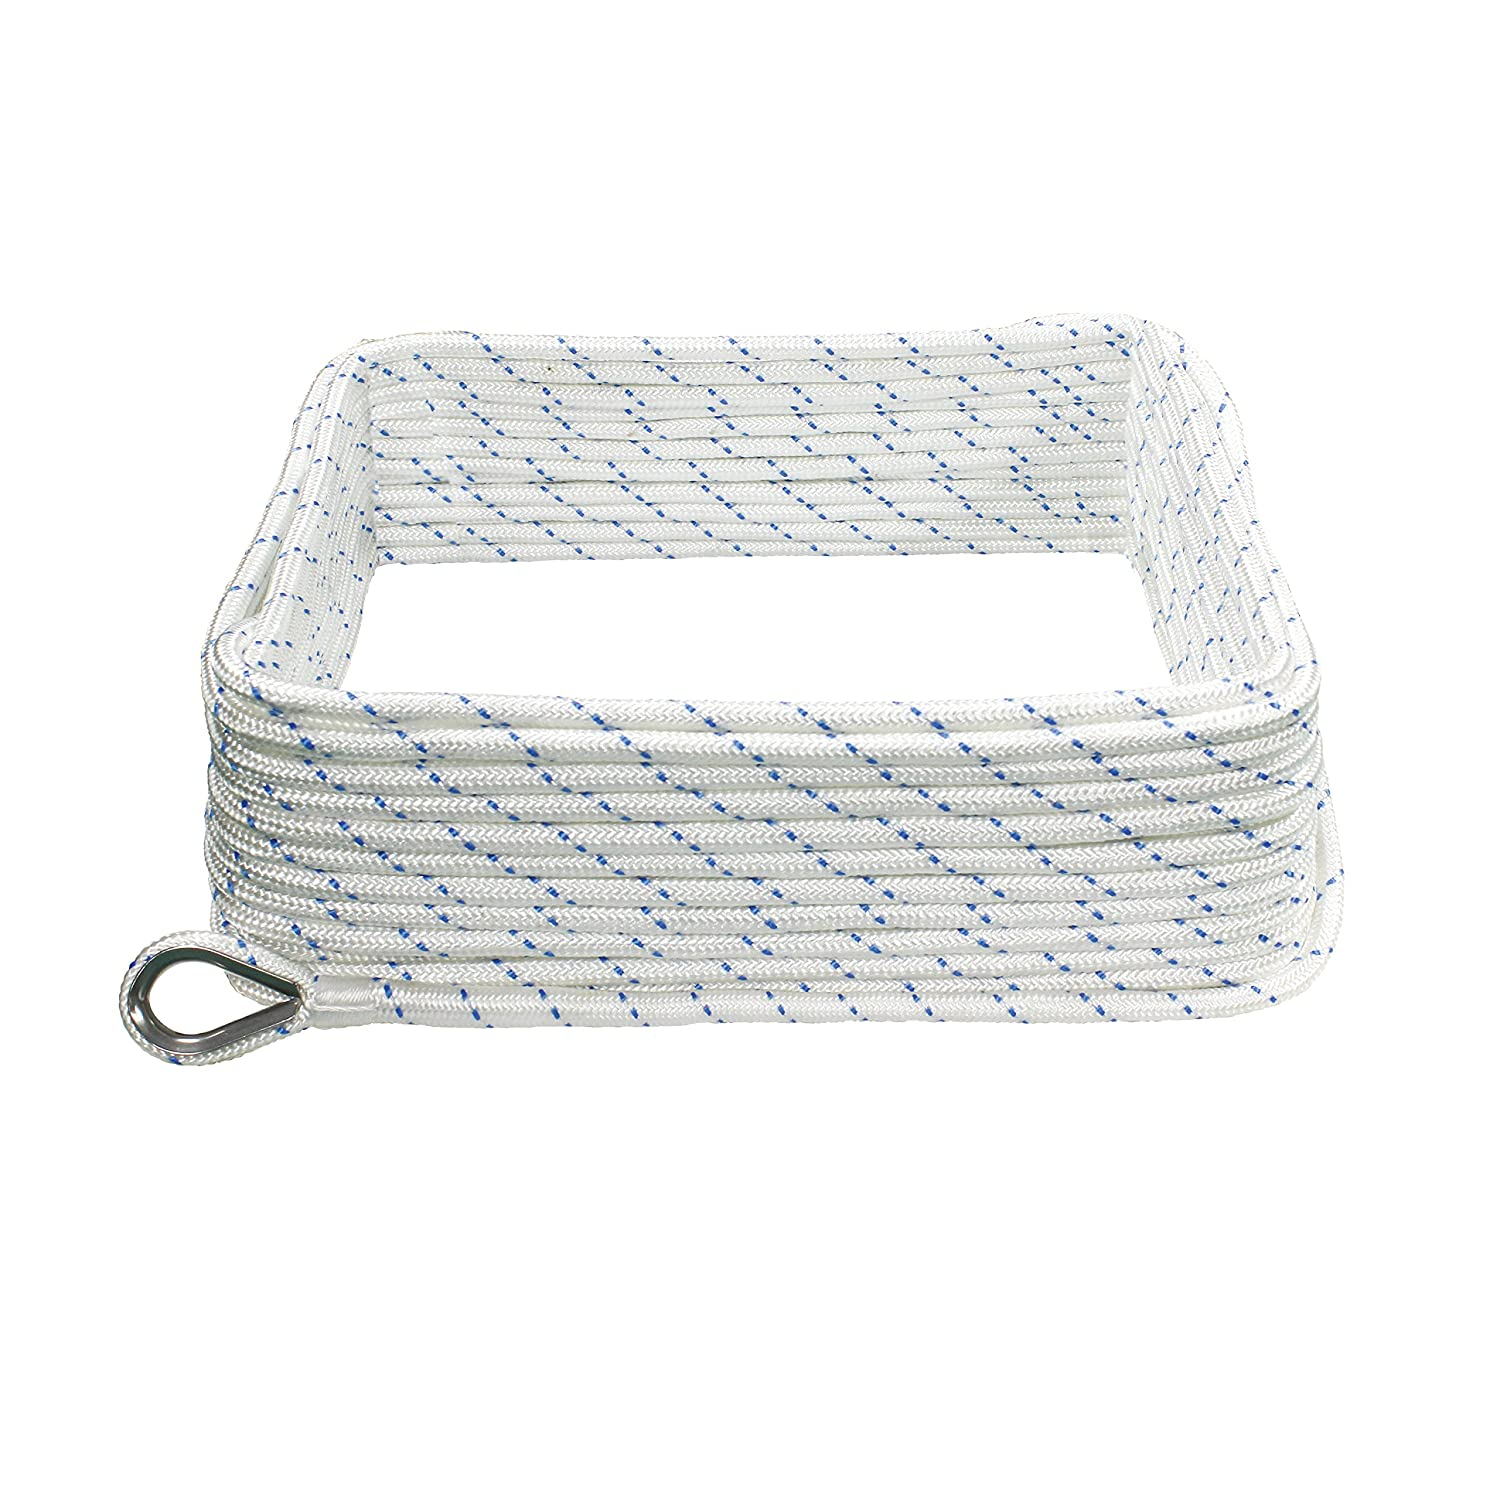 Extreme Max 3006.2505 Boat Tector Double Braid Nylon Anchor Line with Thimble White with Blue Tracer 3//8 x 250